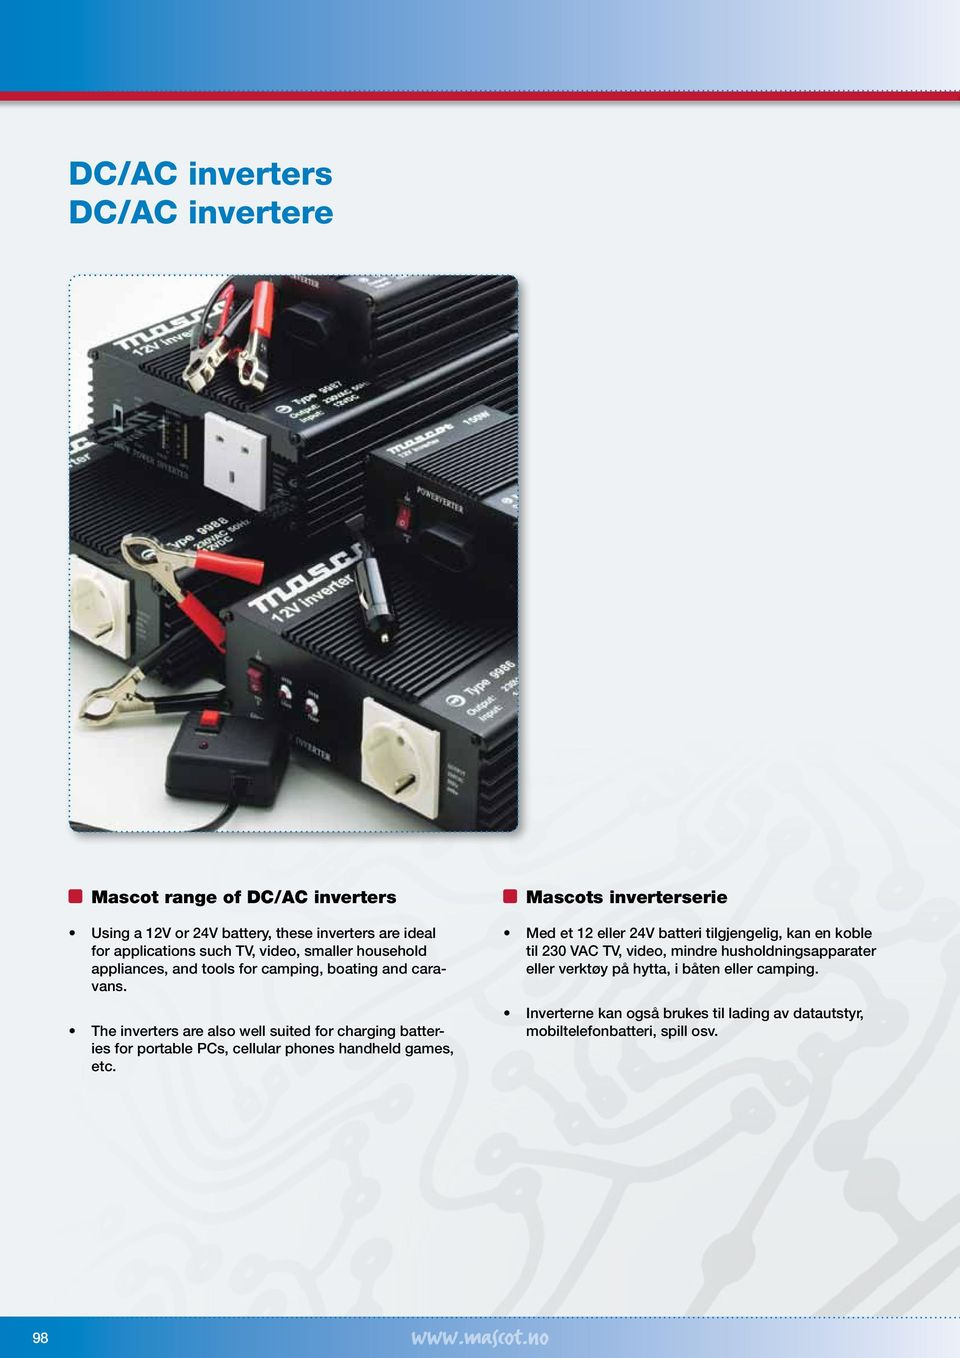 The inverters are also well suited for charging batteries for portable PCs, cellular phones handheld games, etc.